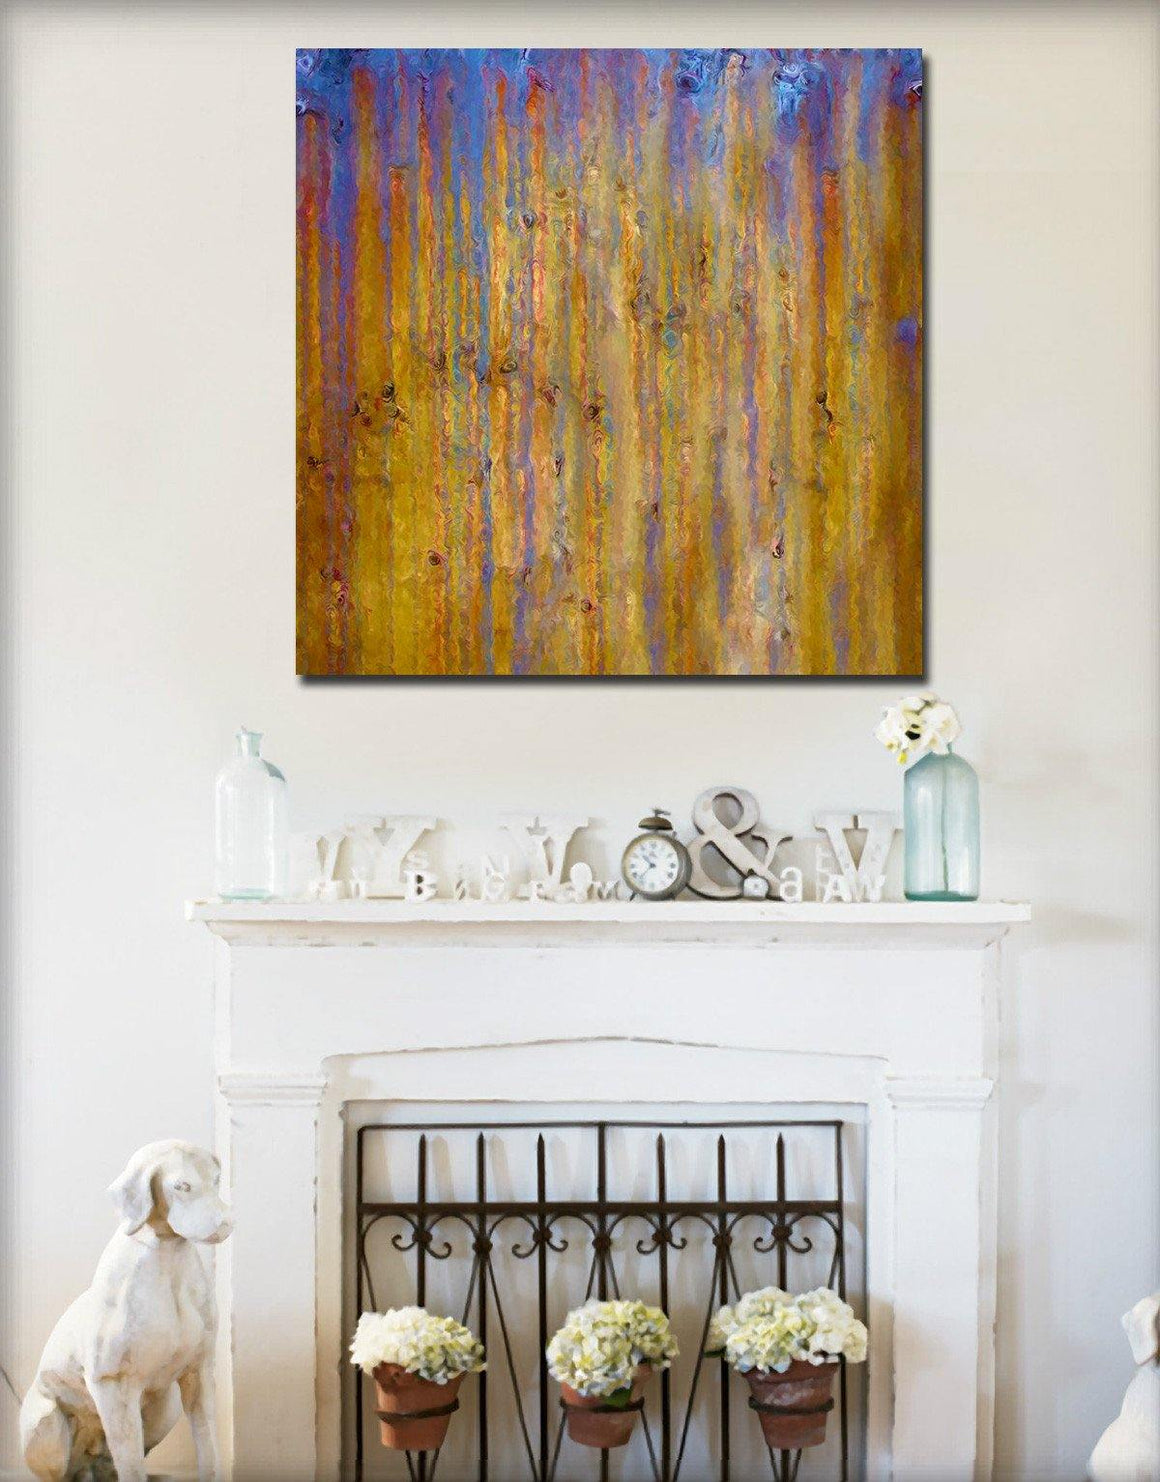 Interior Design Focal Point Art Inspiration- Christian Art-John 11:35. Versevisions contemporary abstract fine art by Mark Lawrence. Artist direct original limited edition signed canvas & paper giclees